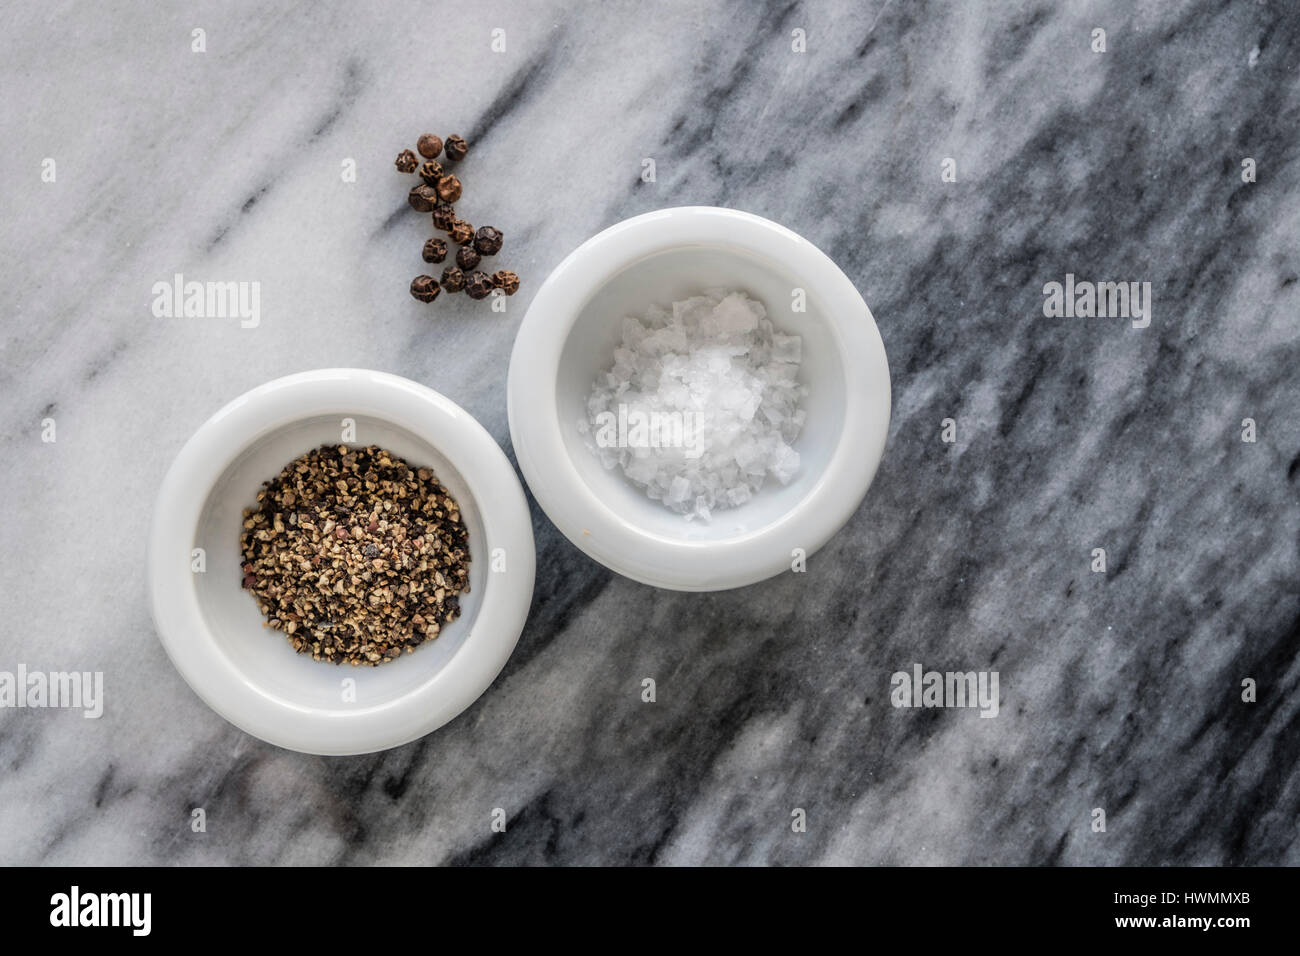 Two small white dishes of sea salt flakes and freshly ground black pepper and scattering of peppercorns. Top down - Stock Image